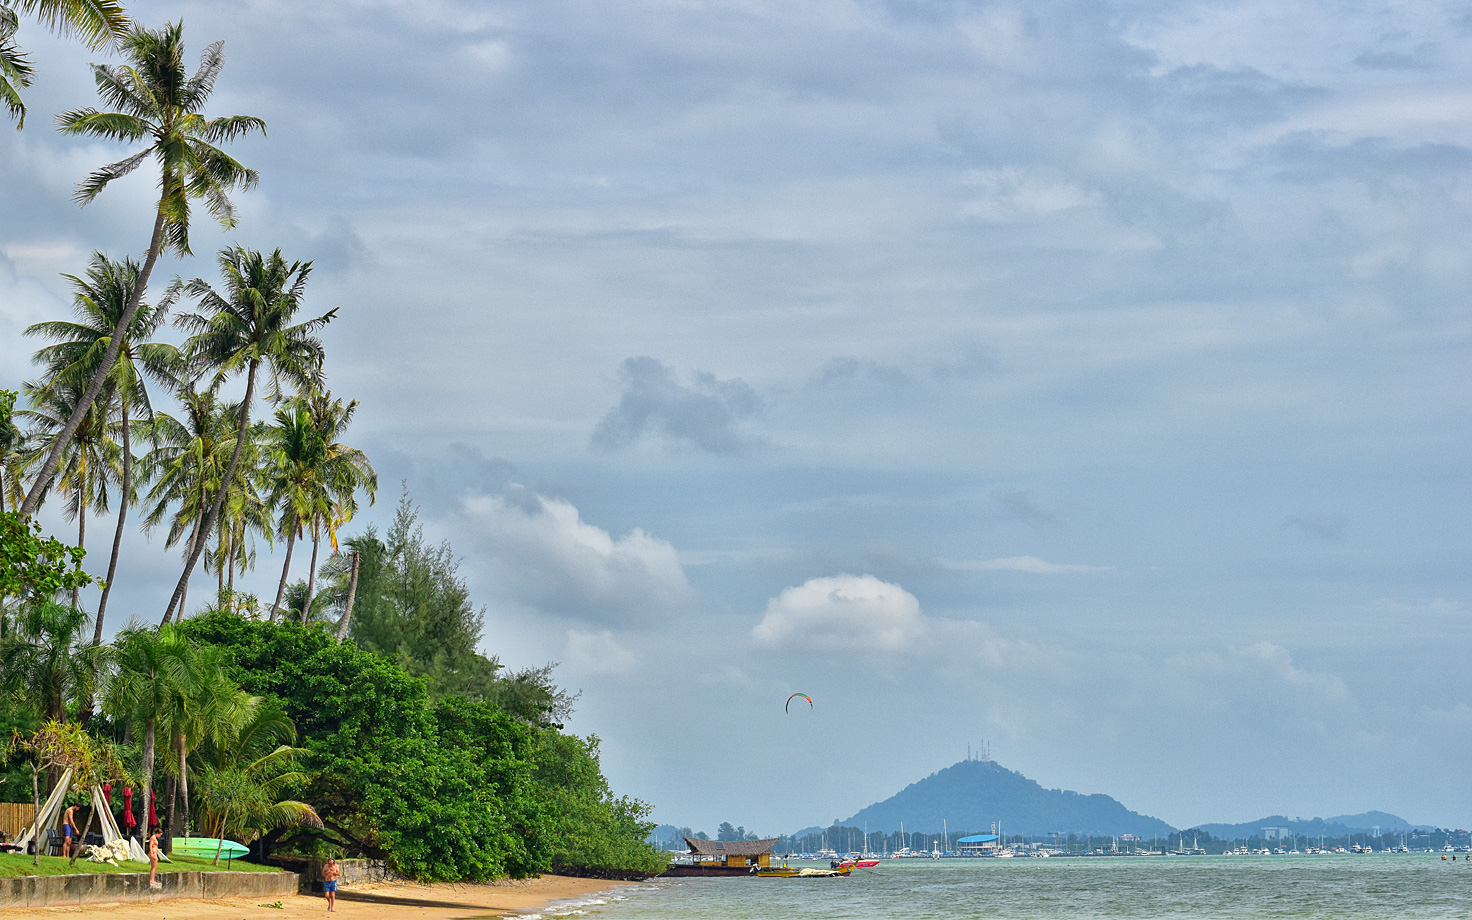 exotic kitesurfing spot in thailand on phuket island with palm trees on the beach and hills in the background